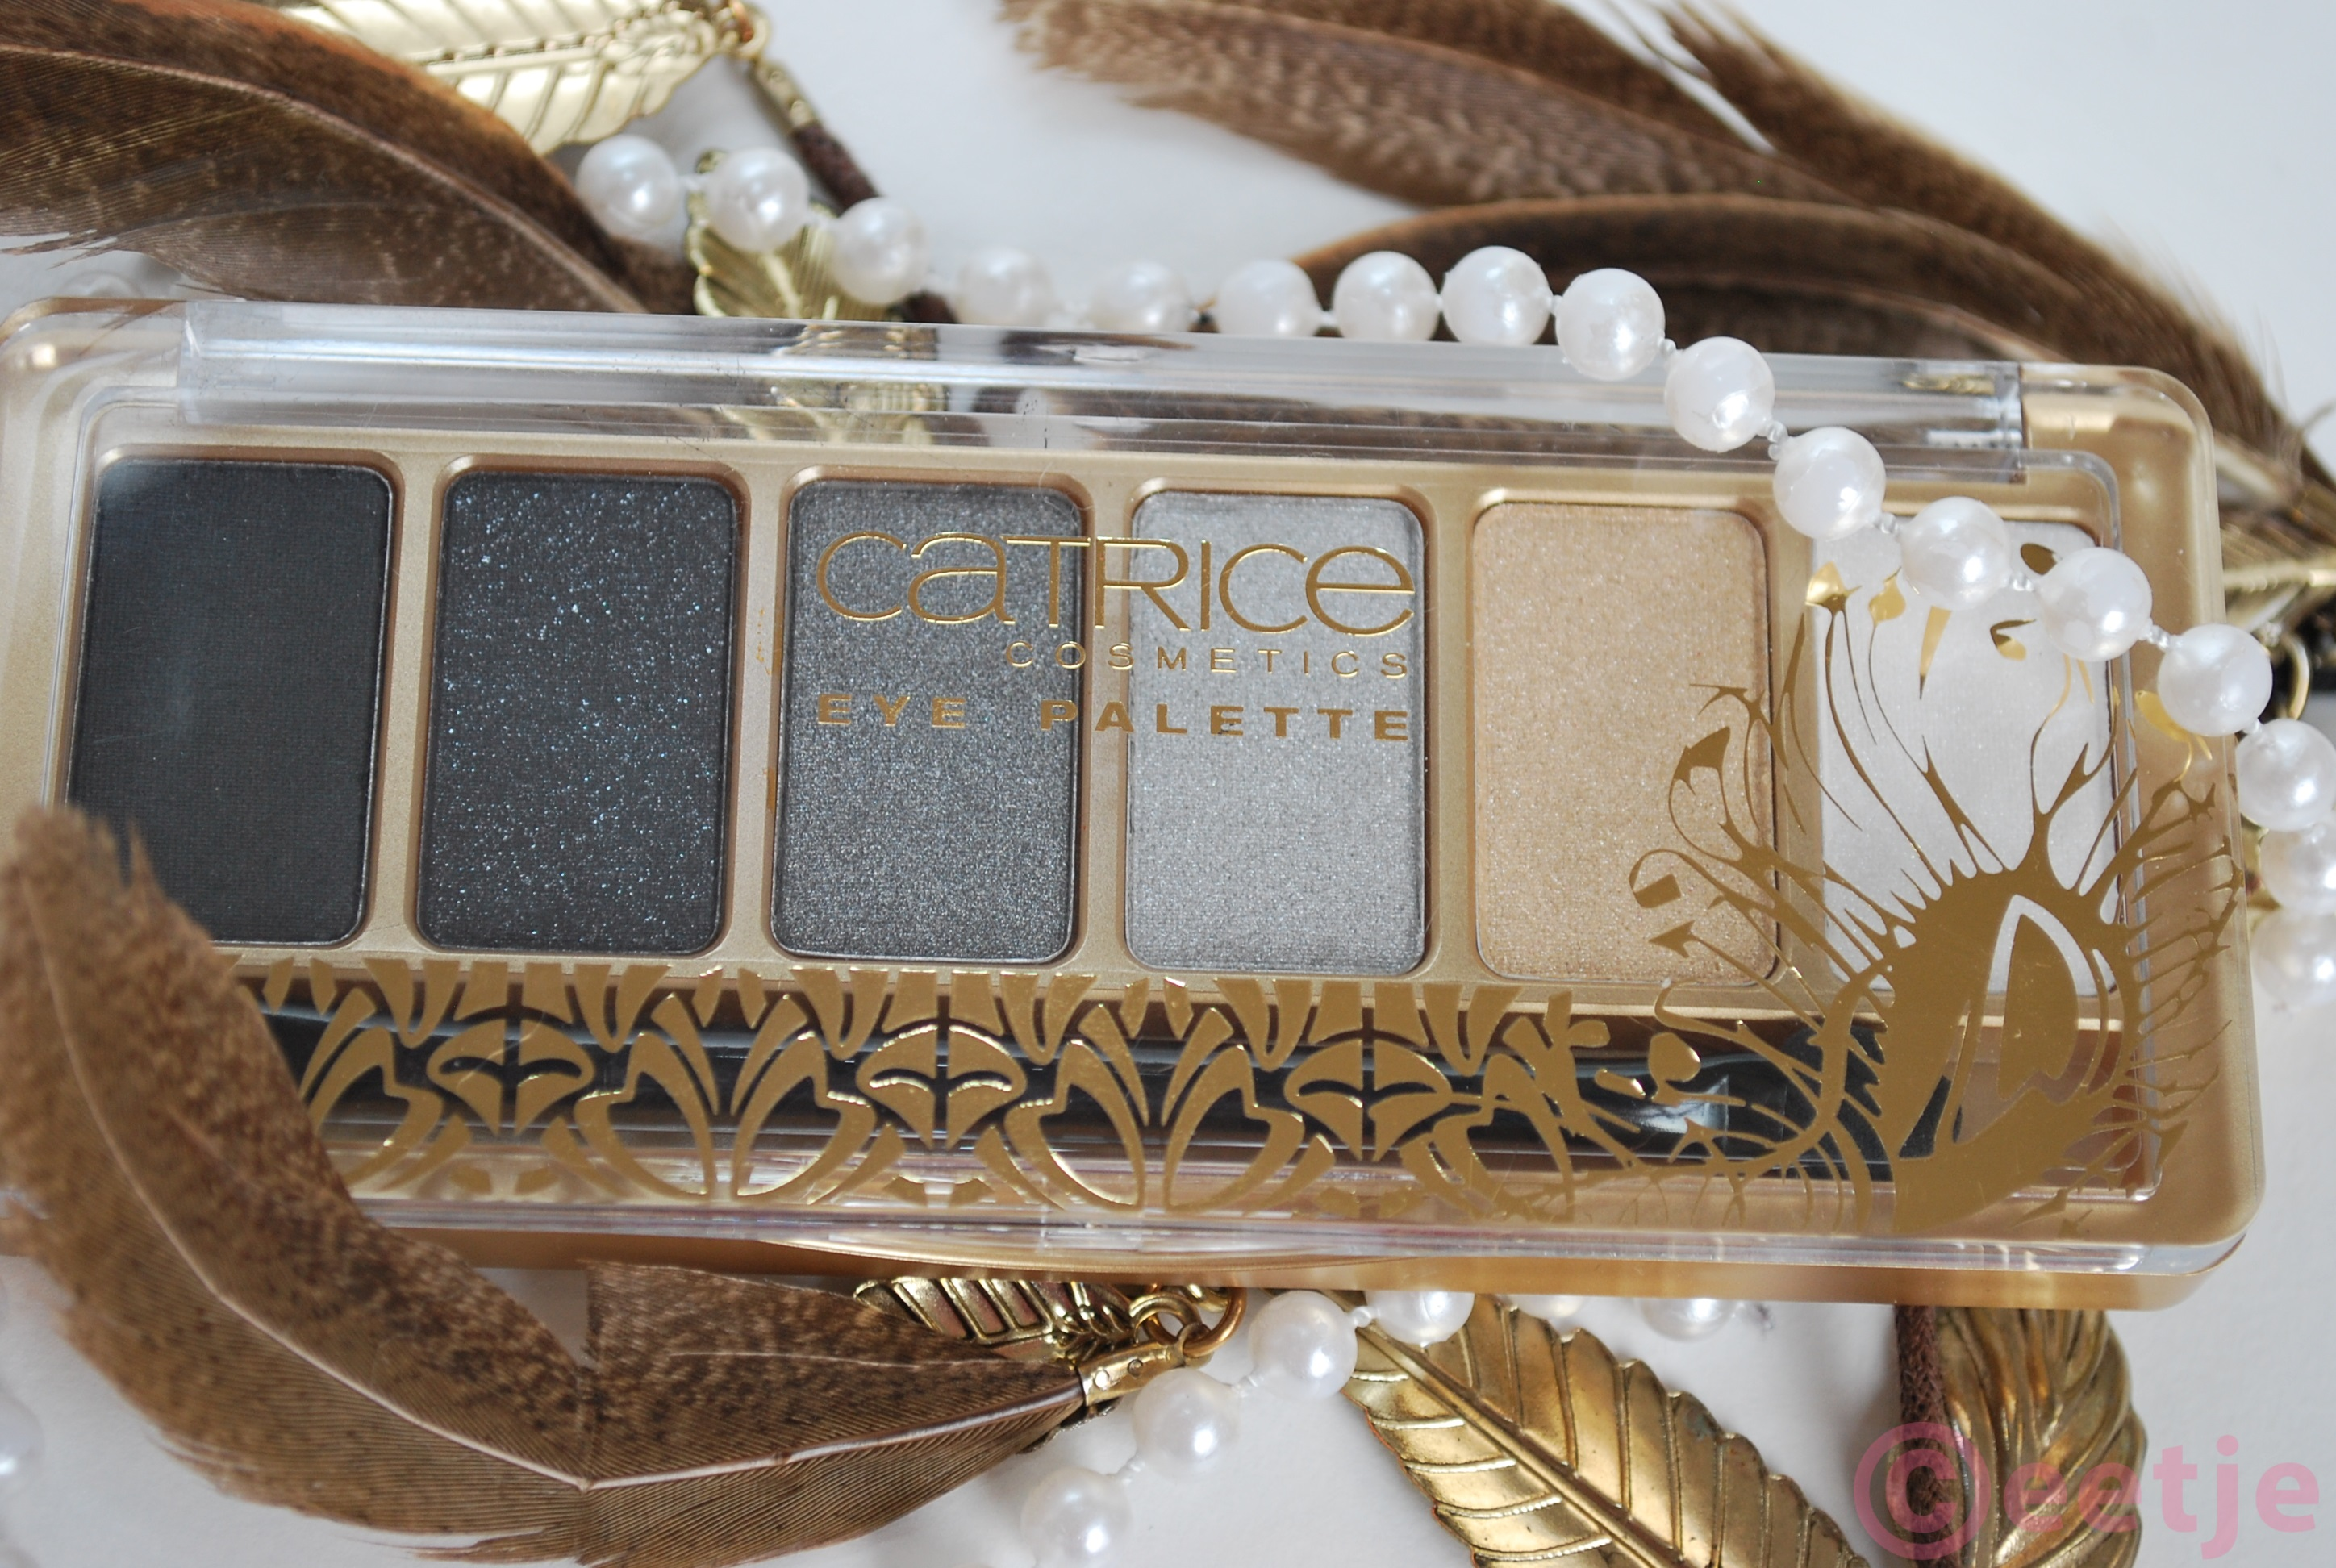 Catrice Feathers and pearls palette review